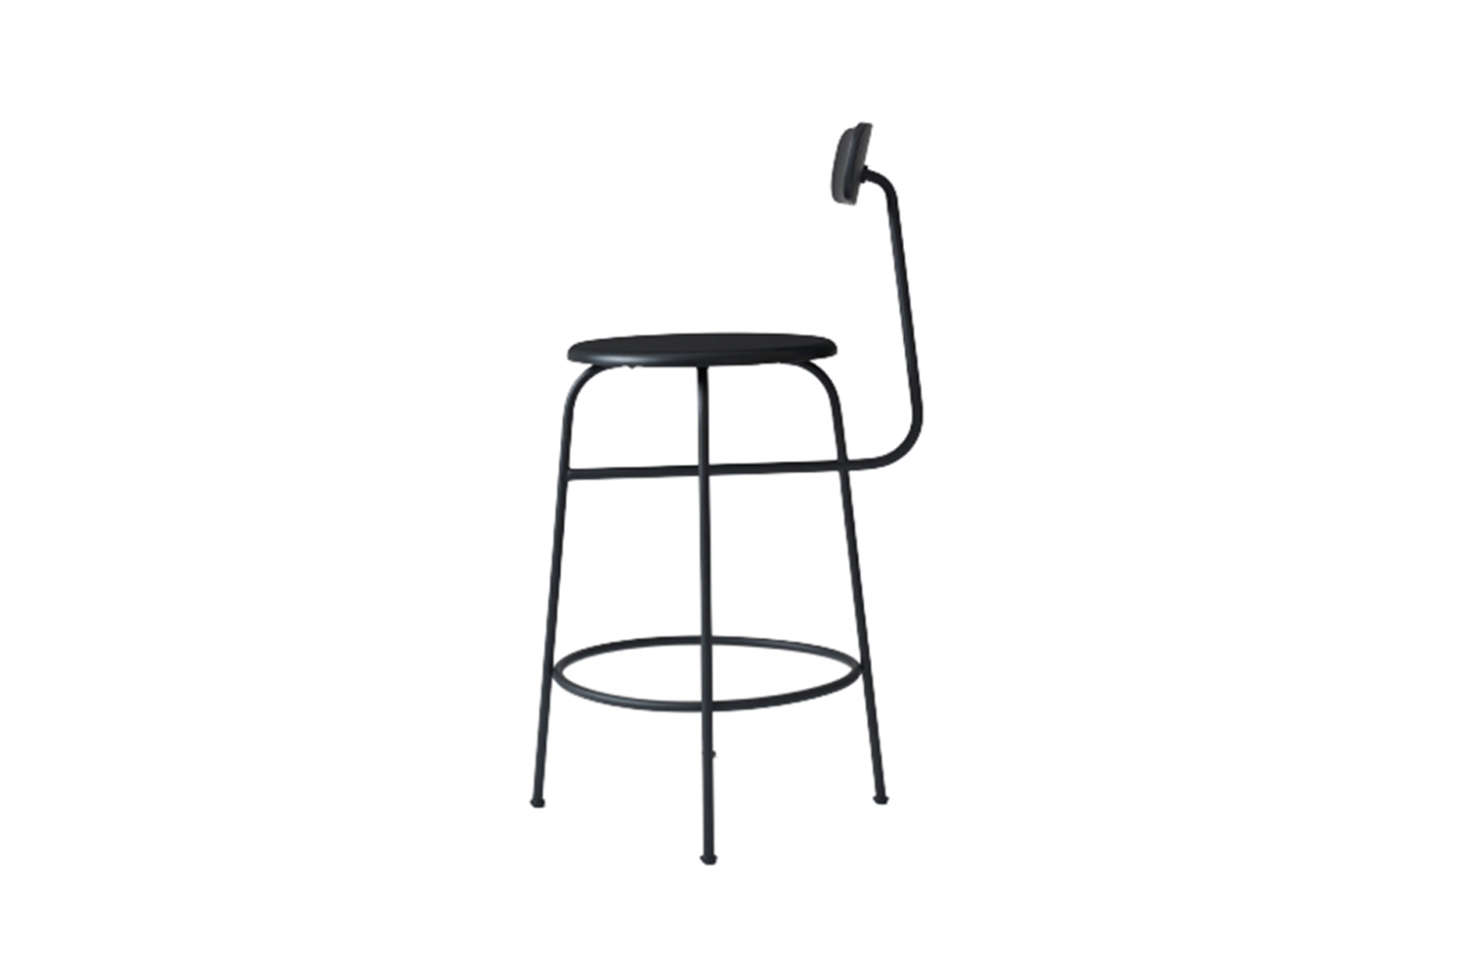 The Menu Afteroom Counter Chair in black is $373 at Finnish Design Shop.